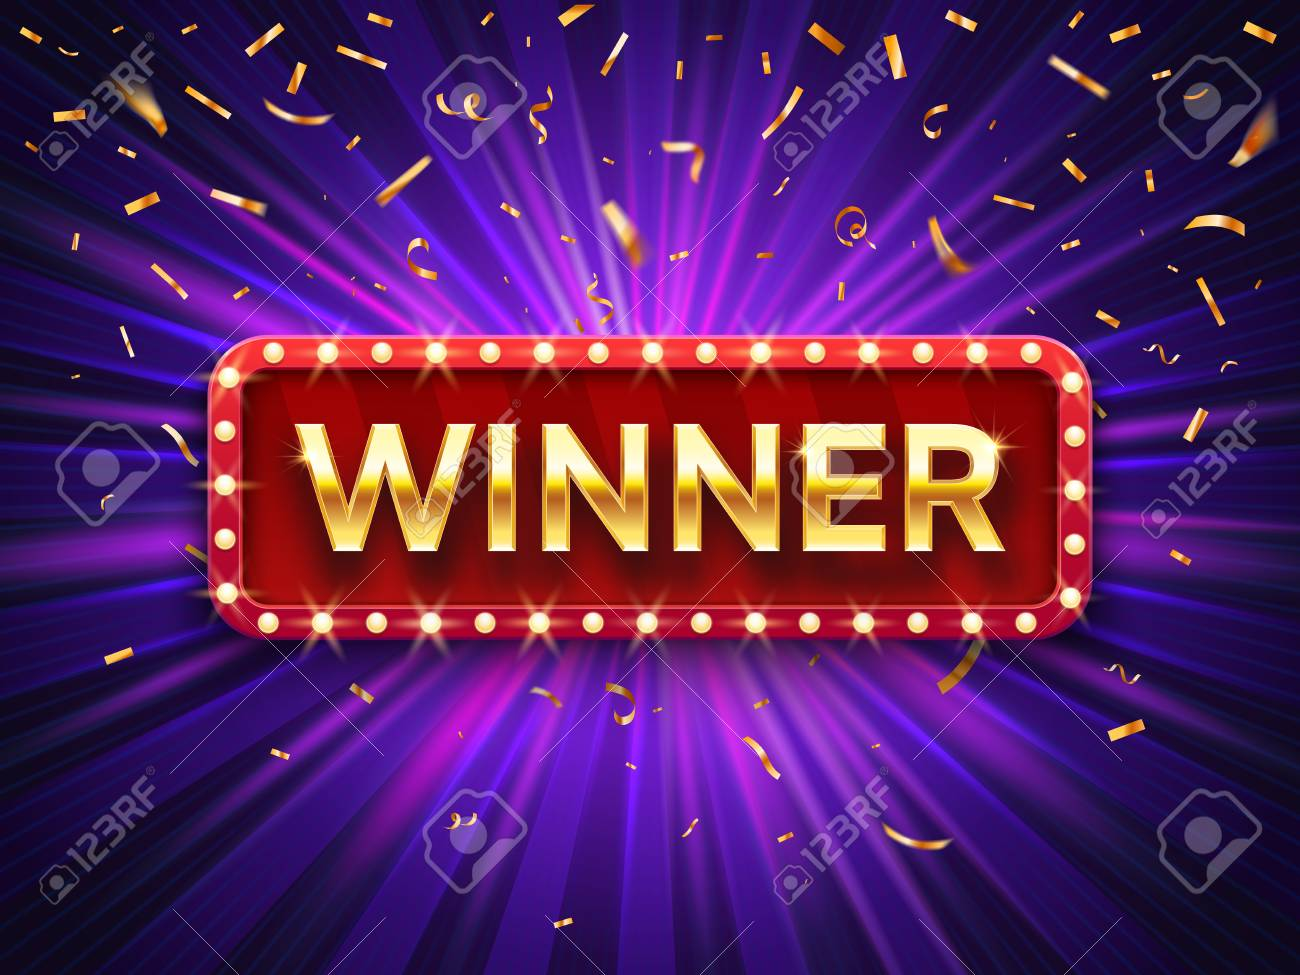 Winner banner. Win congratulations vintage frame, golden congratulating framed sign with gold confetti. Winners lottery game jackpot prize logo vector background illustration - 120732505